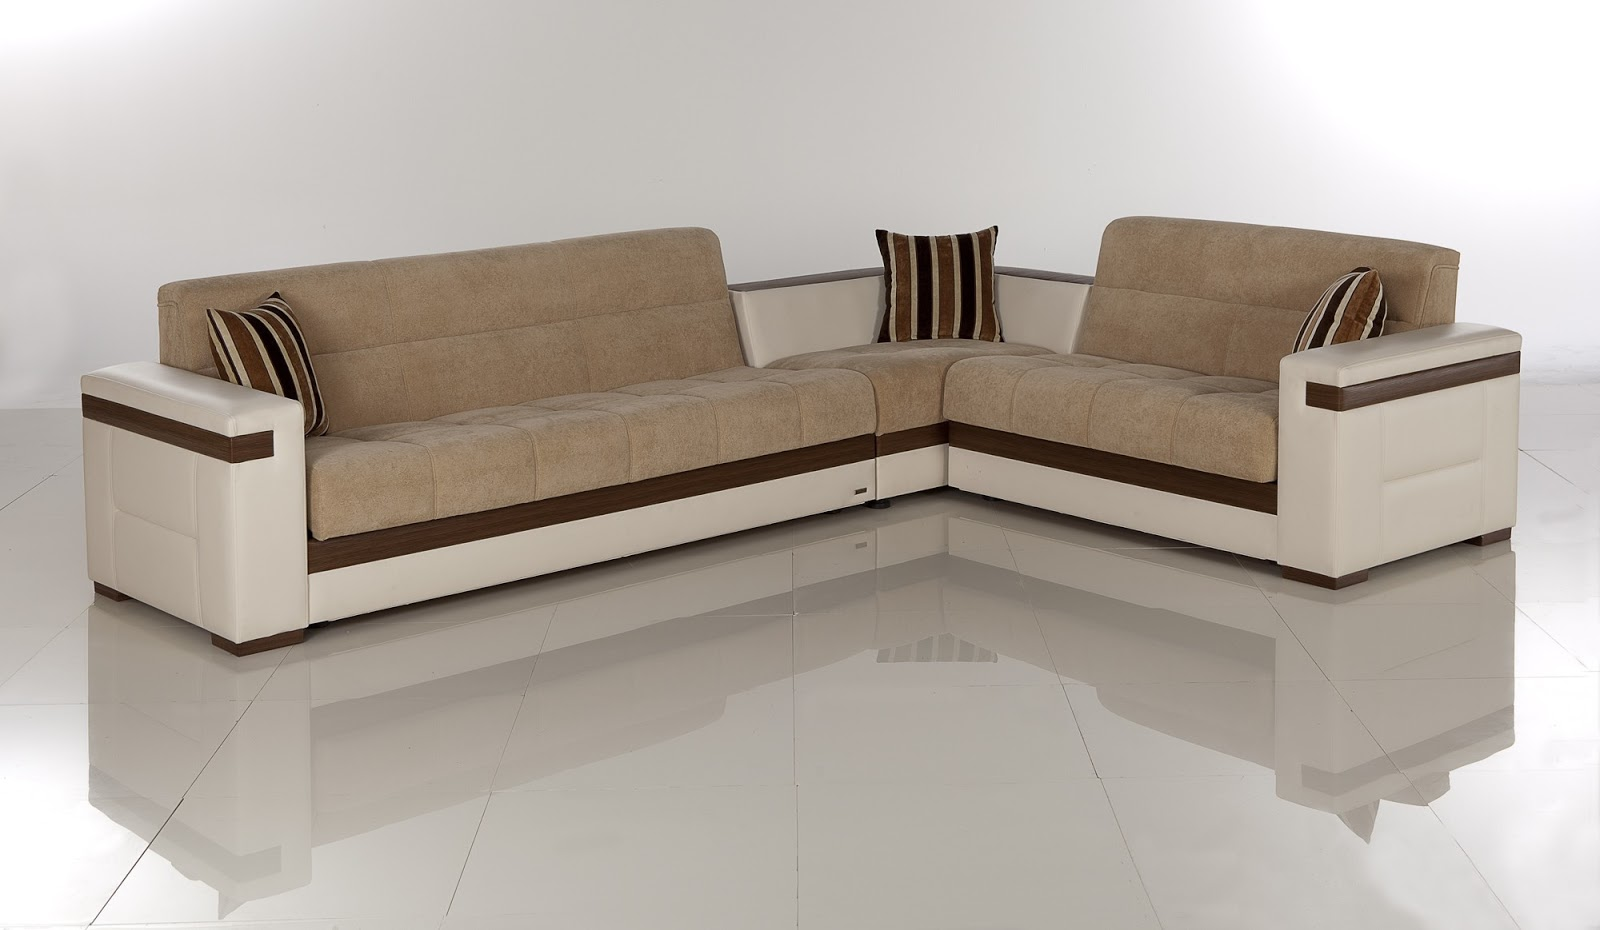 Sofa designs ideas home and design for Design of household furniture